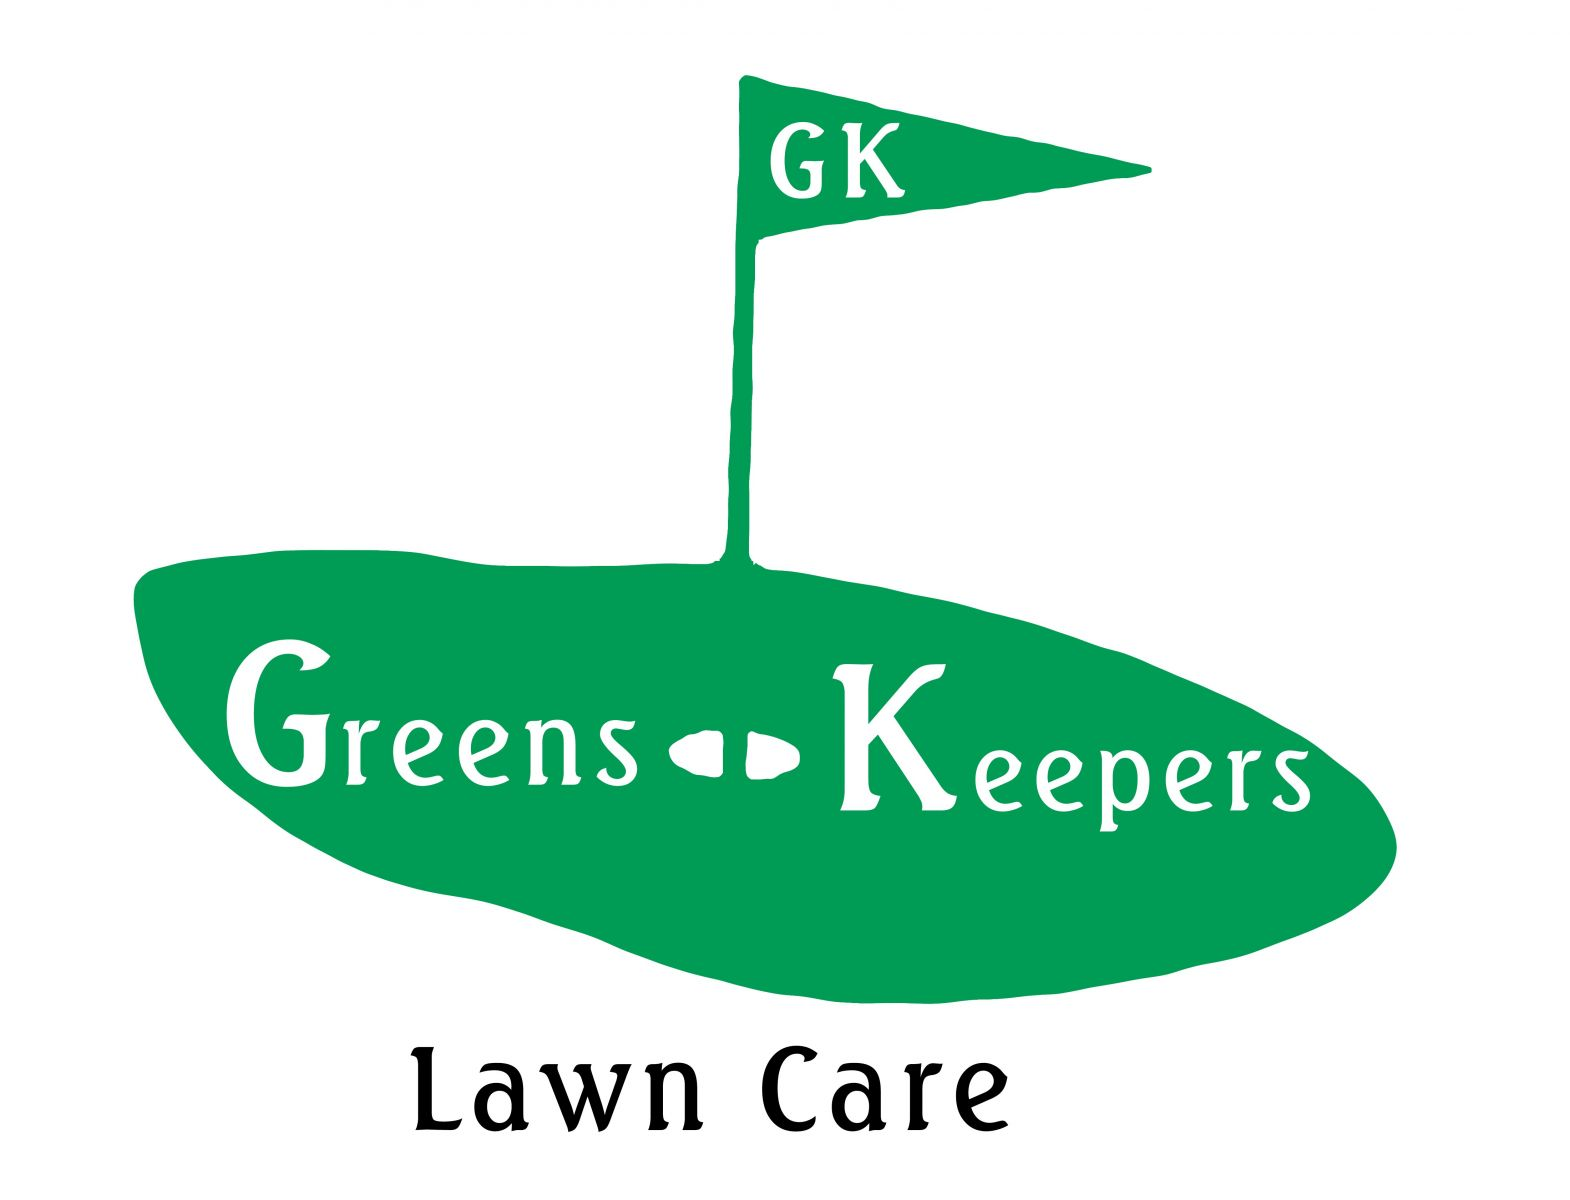 greens-keepers-logo.jpg